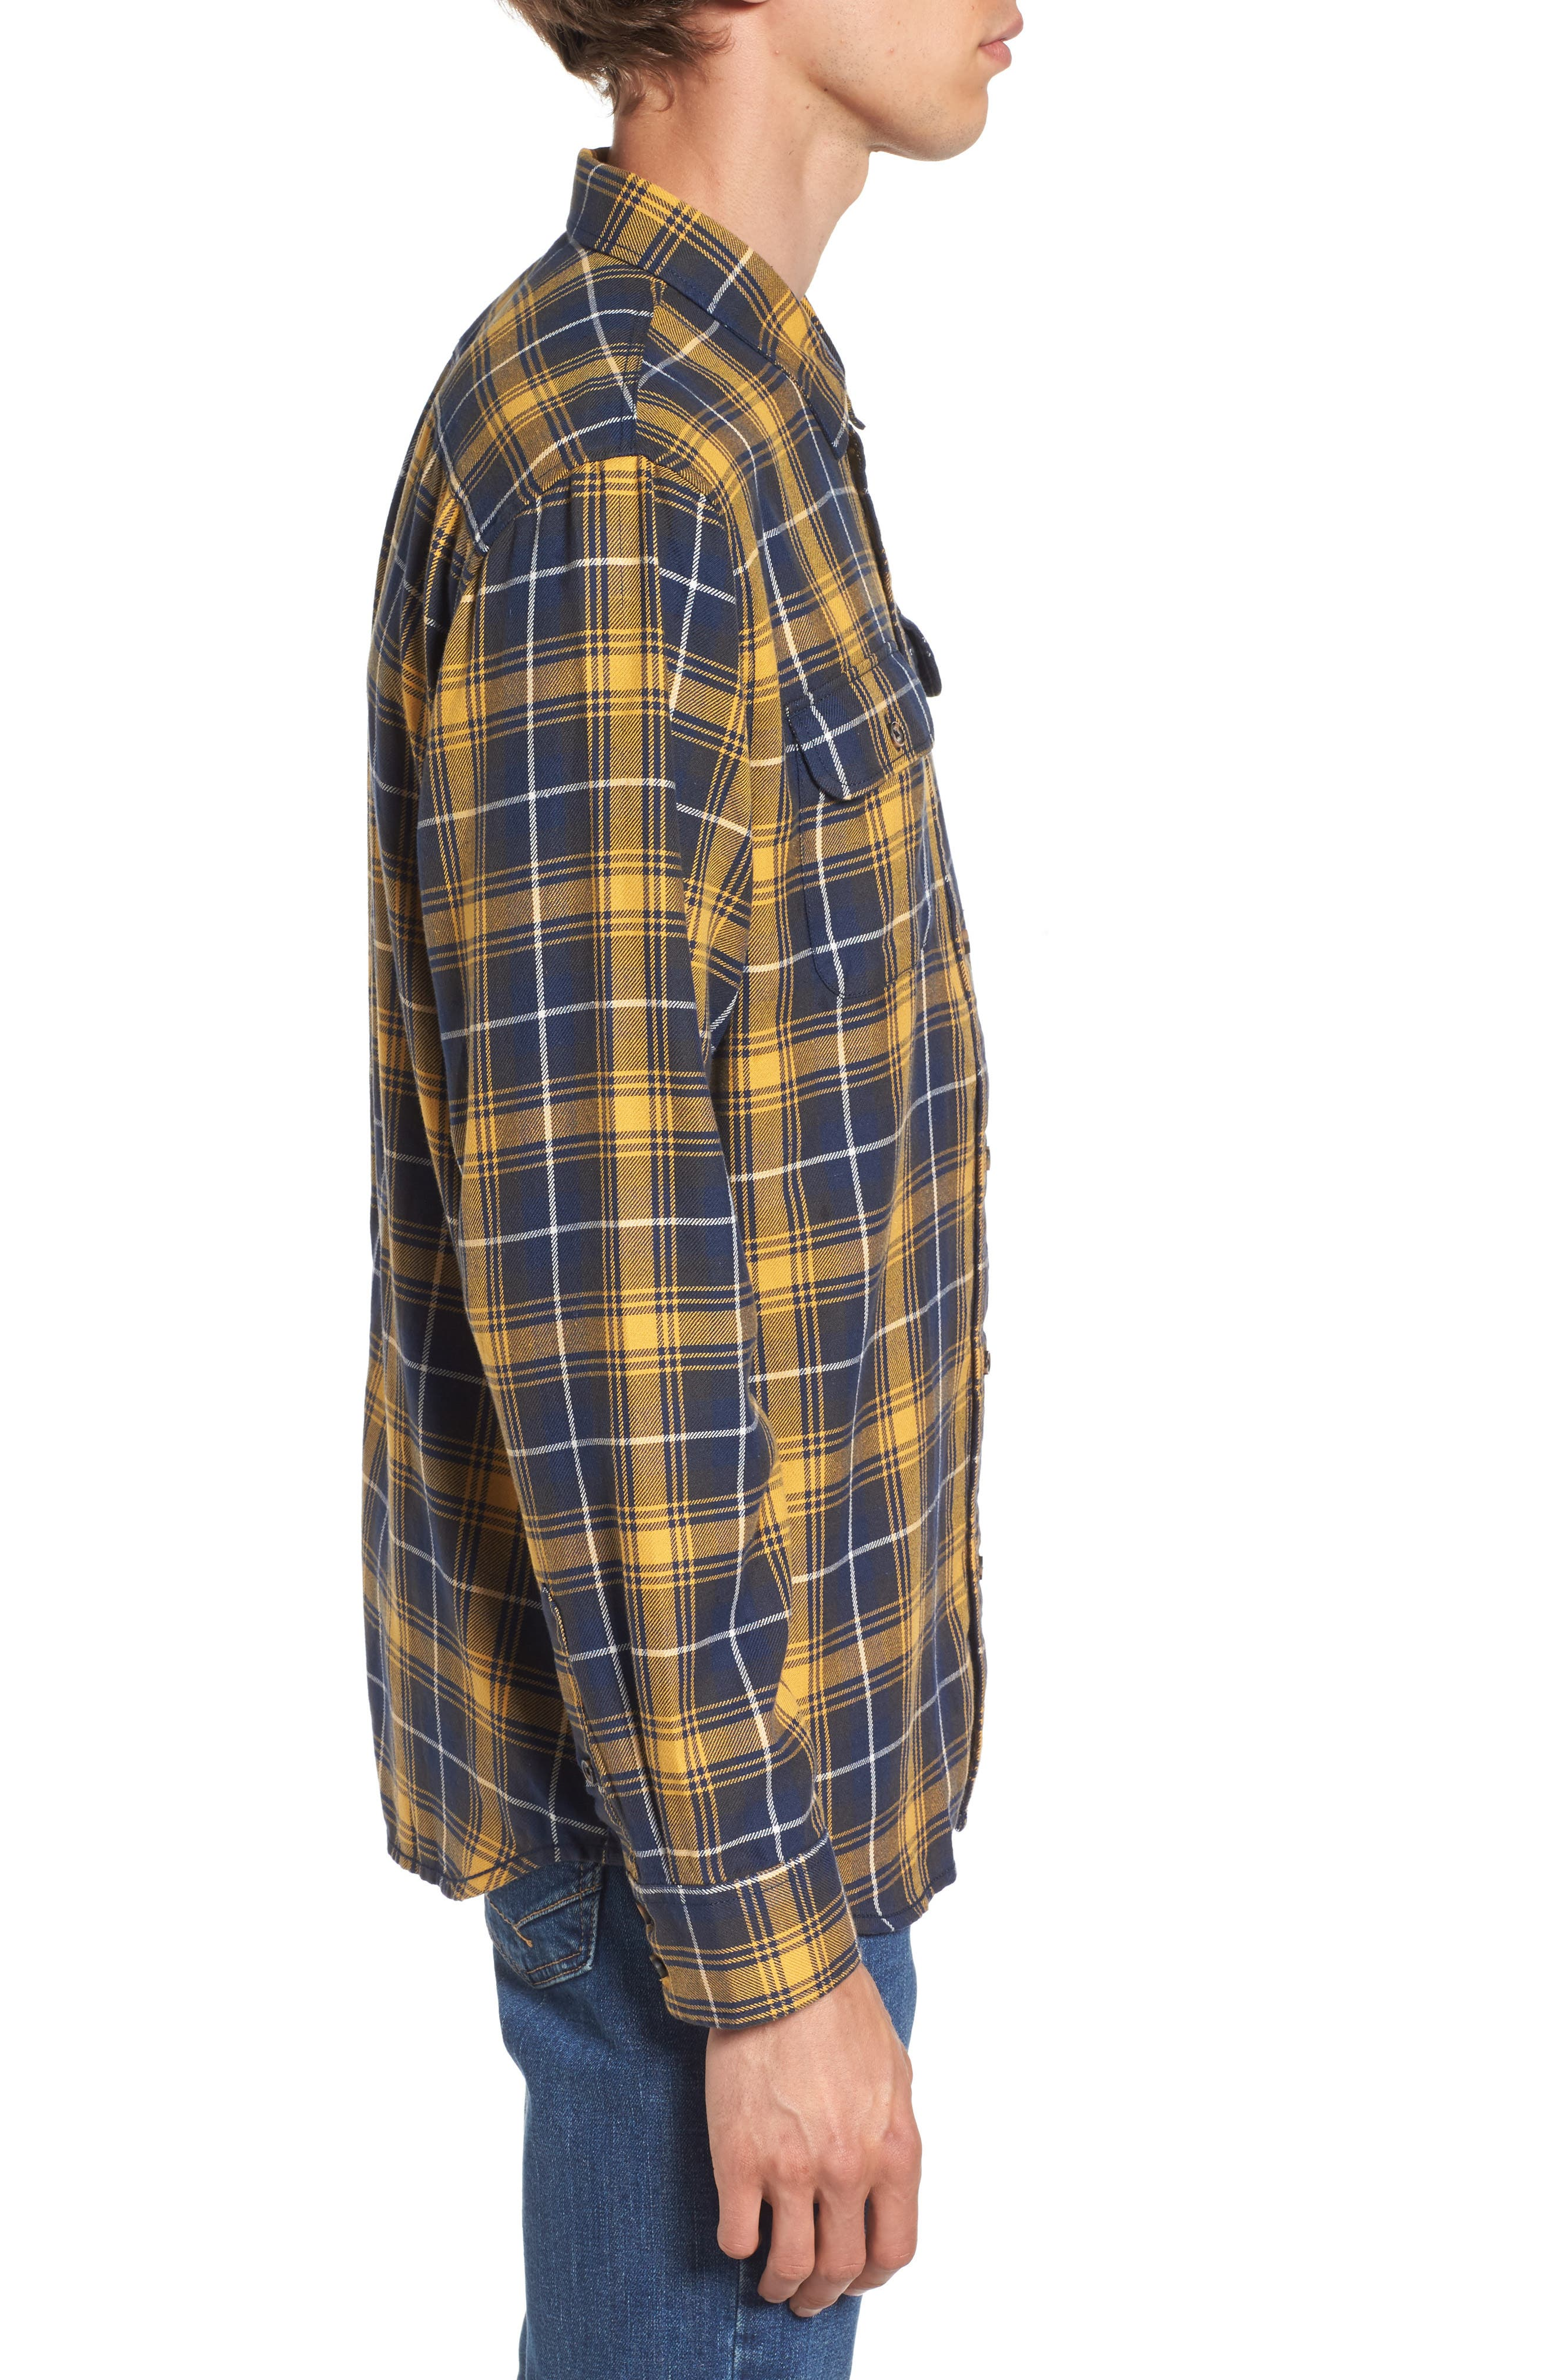 Alternate Image 3  - Vans Sycamore Plaid Flannel Sport Shirt